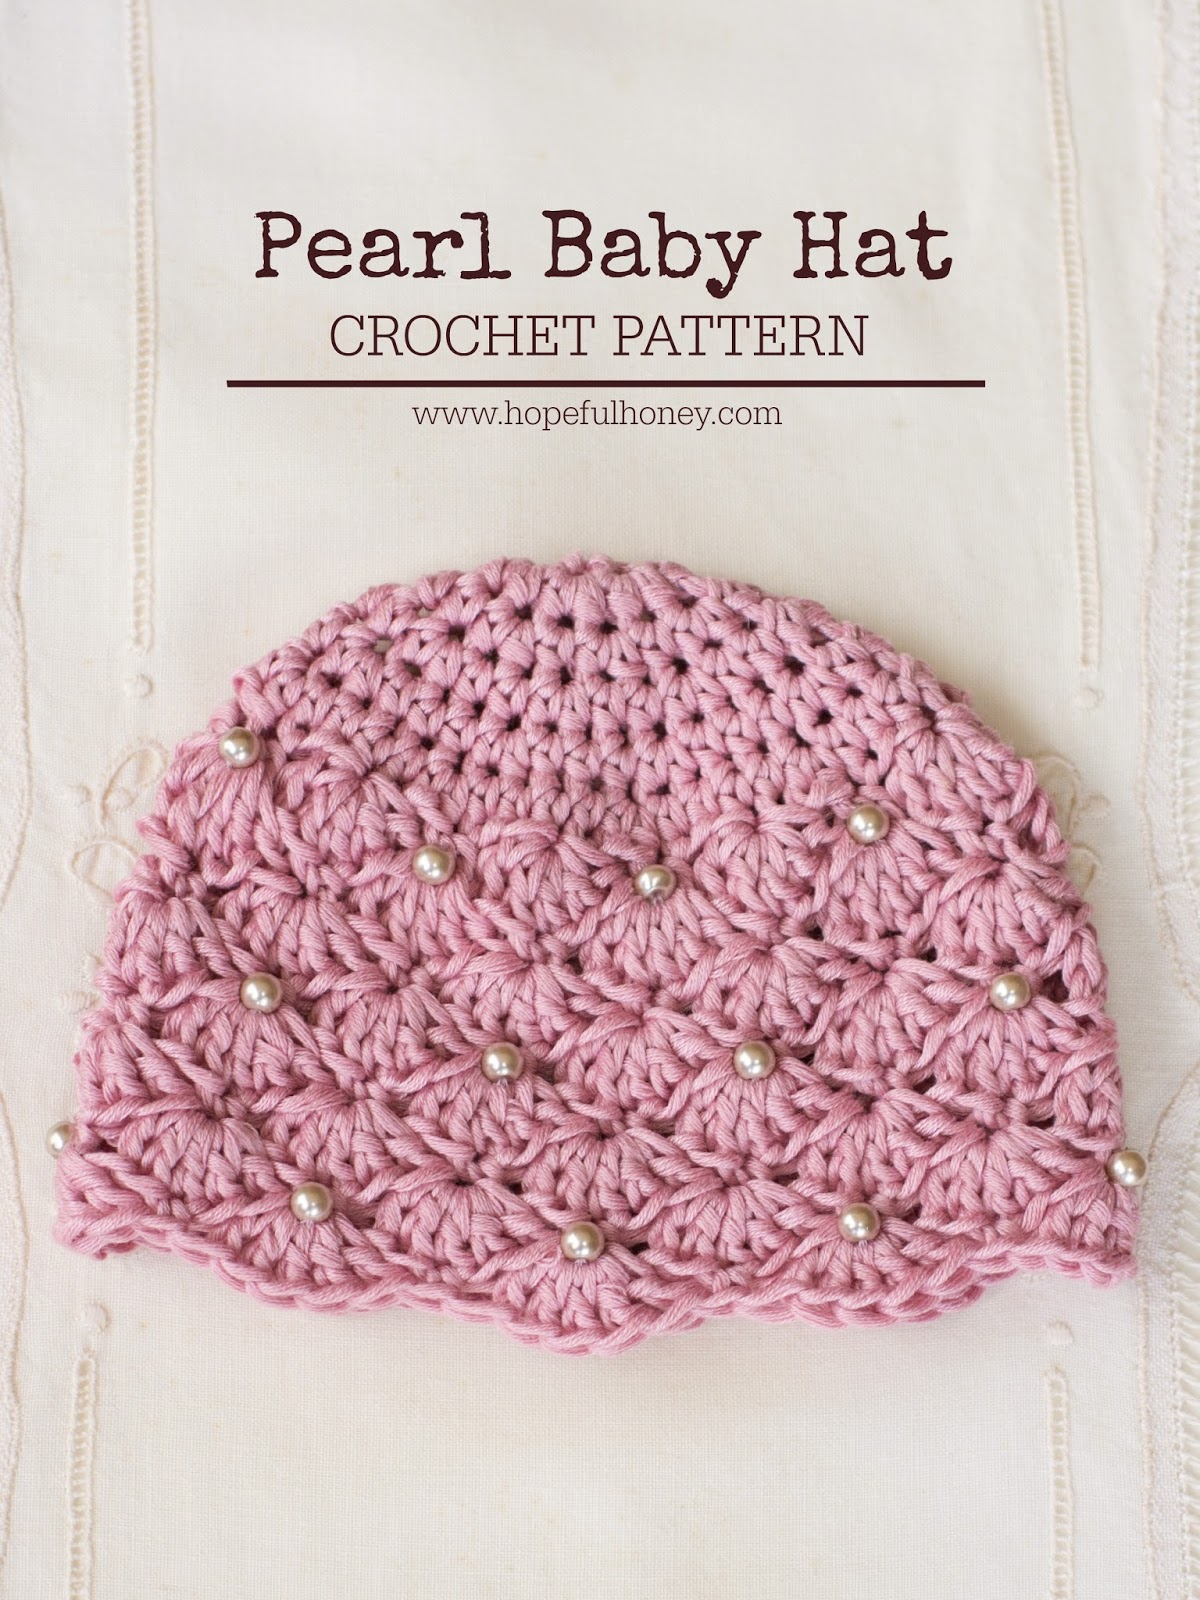 Crochet Stitches Vintage : ... Craft, Crochet, Create: Vintage Pearl Baby Hat - Free Crochet Pattern